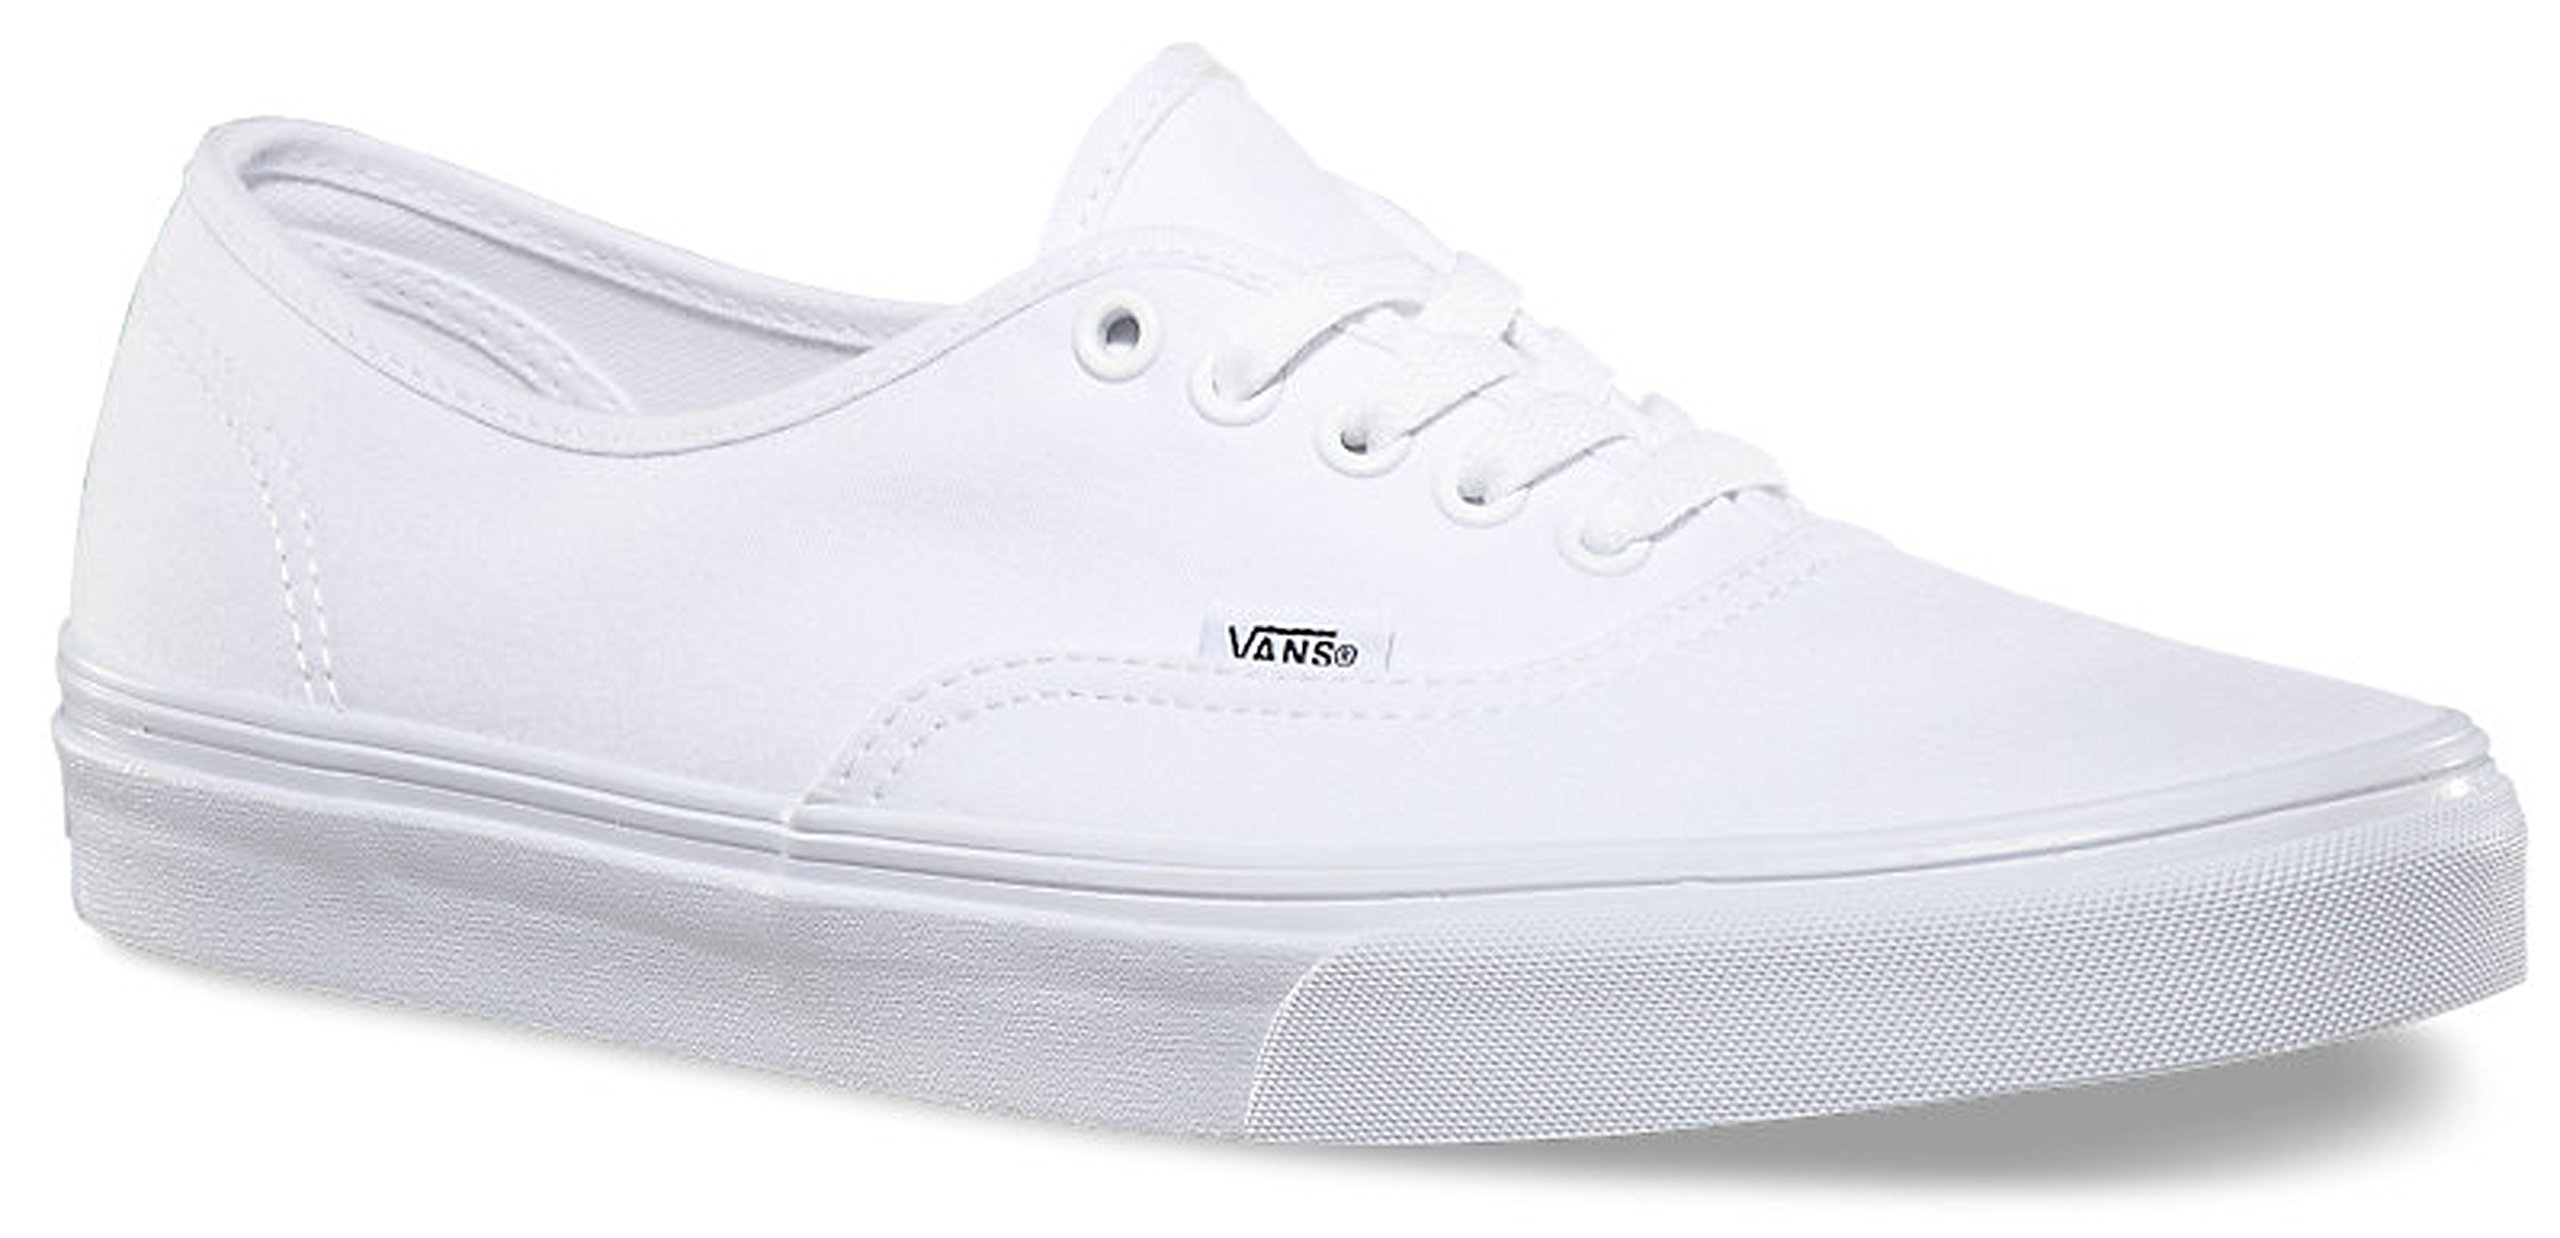 Vans Unisex Authentic True White Canvas VN000EE3W00 Mens 5.5, Womens 7 by Vans